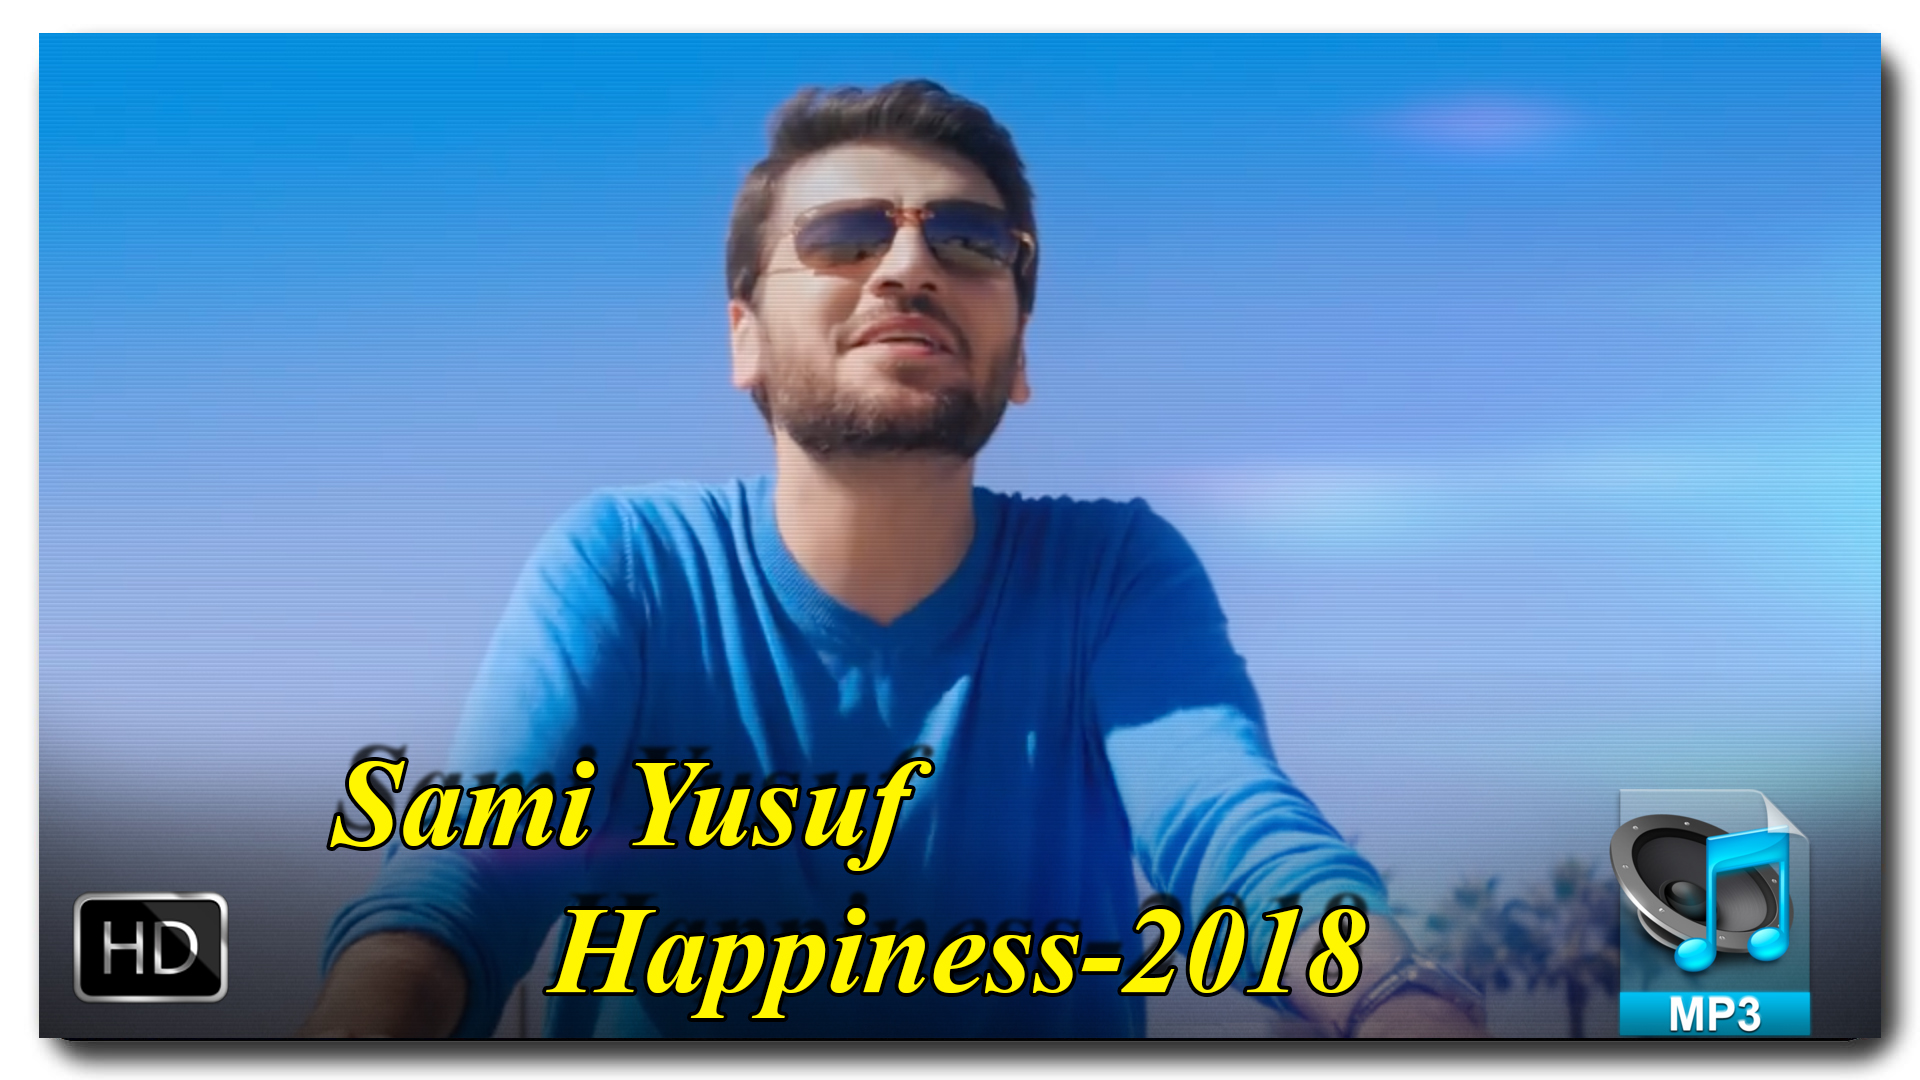 Sami Yusuf (Happiness - 2018)